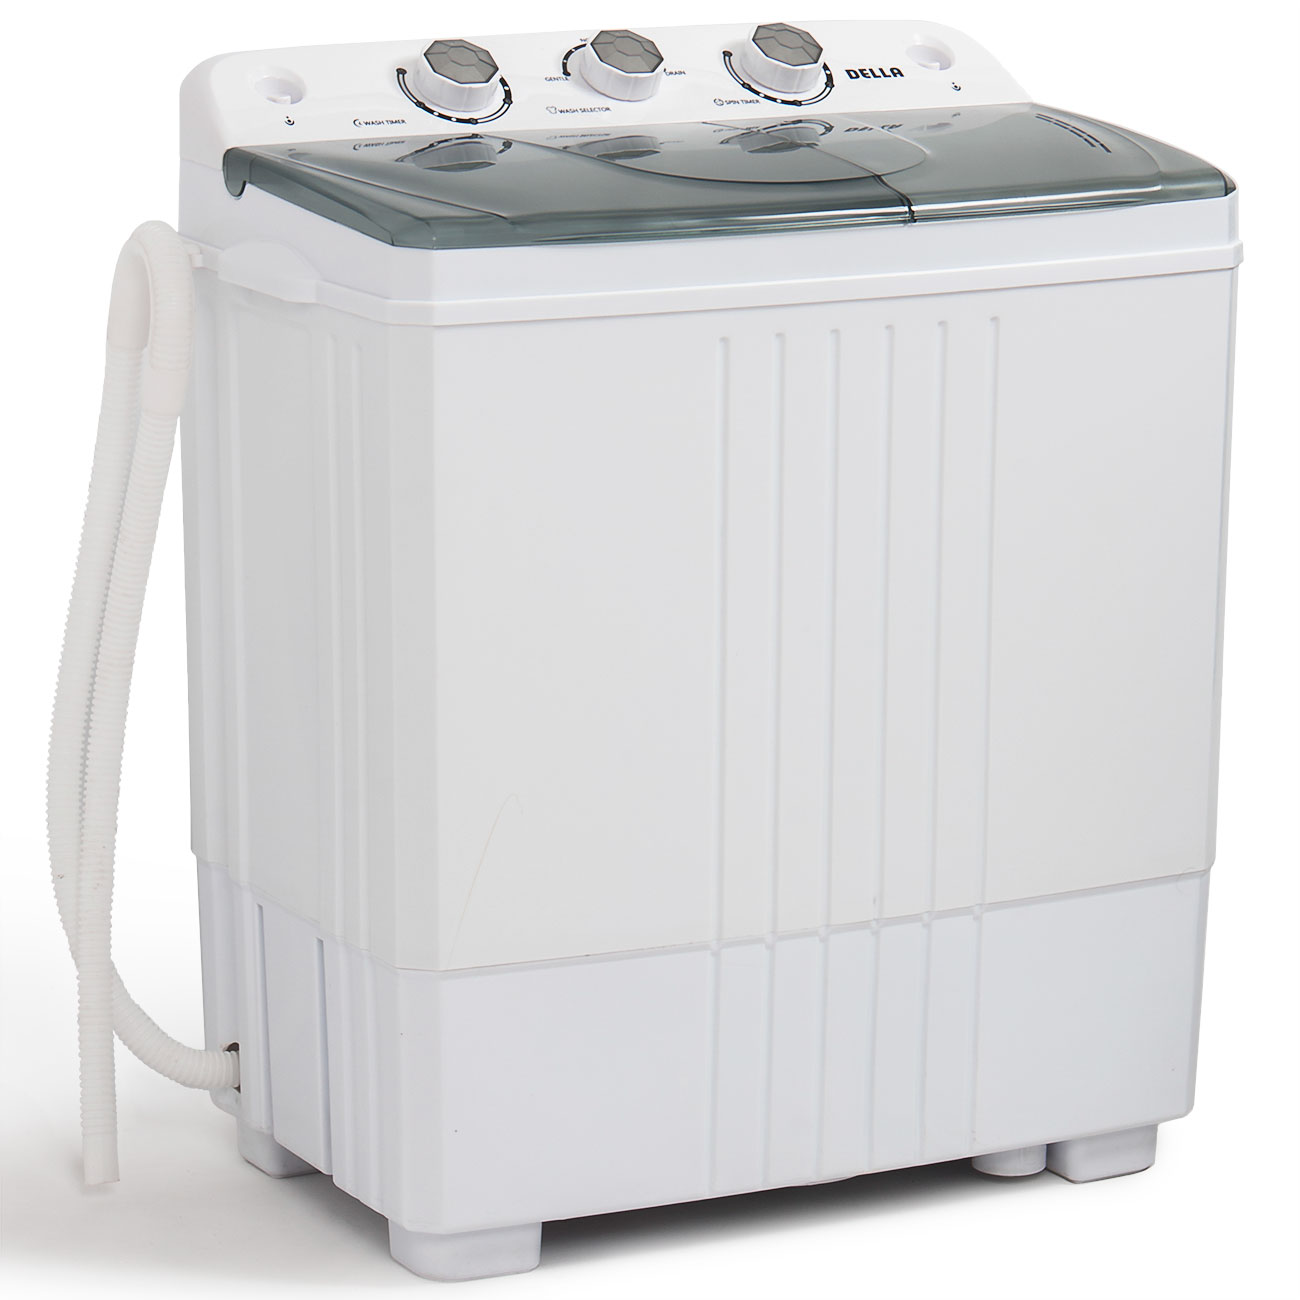 portable mini washing machine compact twin tub 11lb washer spin dryer white 846183161479 ebay. Black Bedroom Furniture Sets. Home Design Ideas